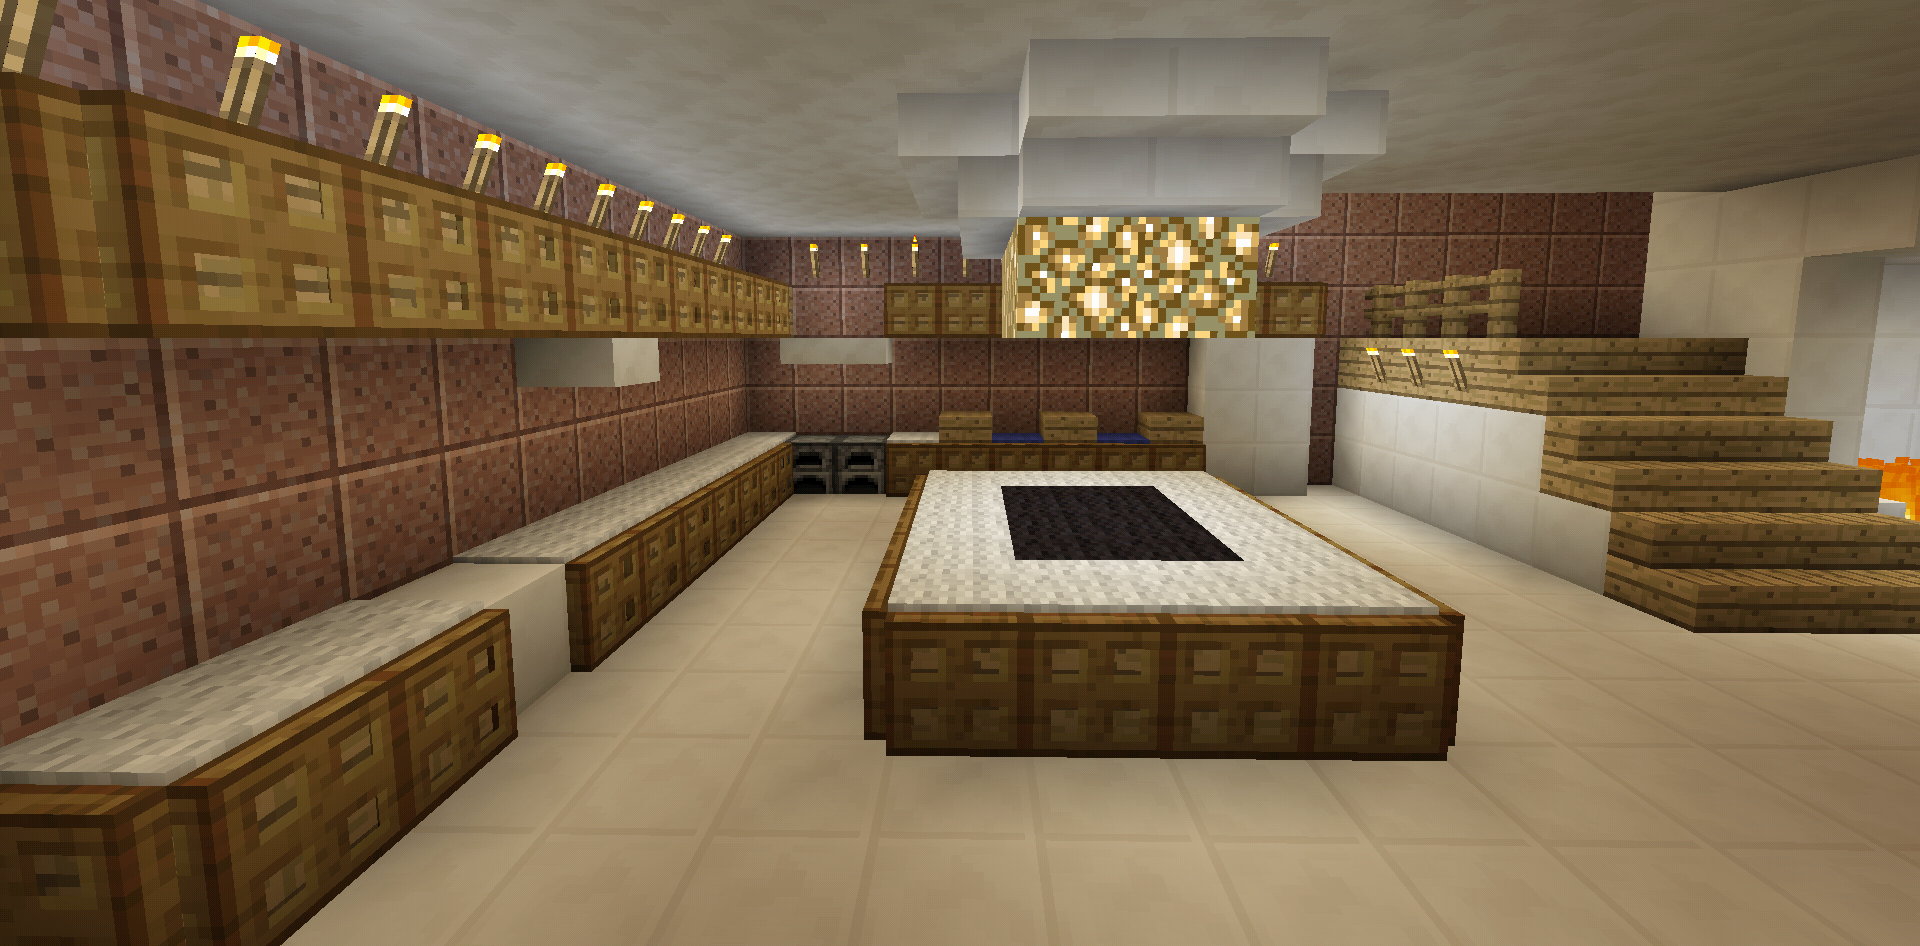 Minecraft Kitchen Stove Sink Fridge Minecraft Kitchen Ideas Minecraft Room Minecraft